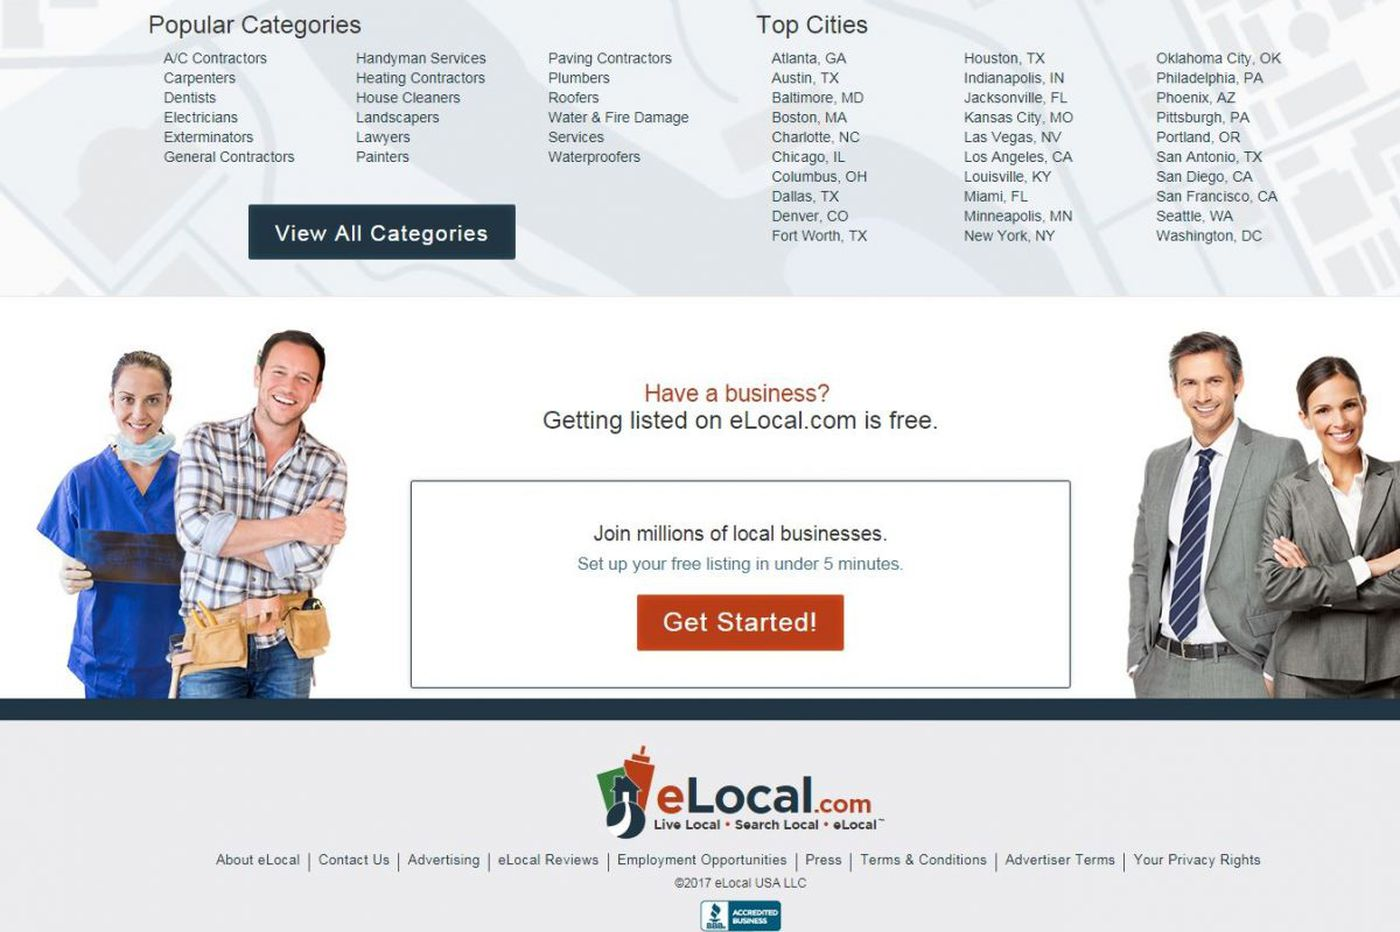 eLocal raises $25M as LLR ups focus on Philly investing (Update)